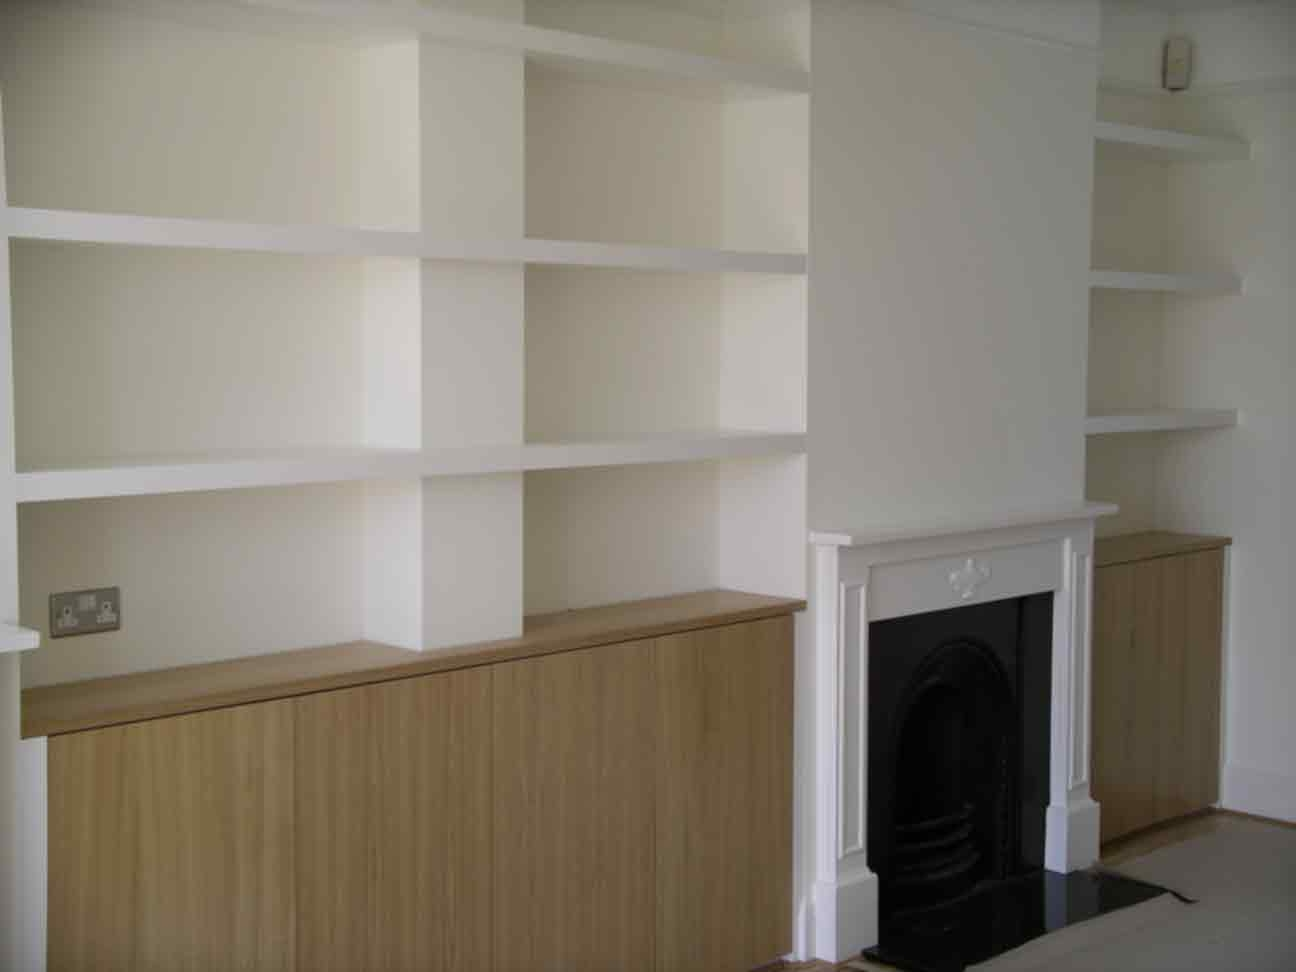 Built In Cupboards Bespoke Design Peter Henderson Furniture Pertaining To Handmade Cupboards (#6 of 12)